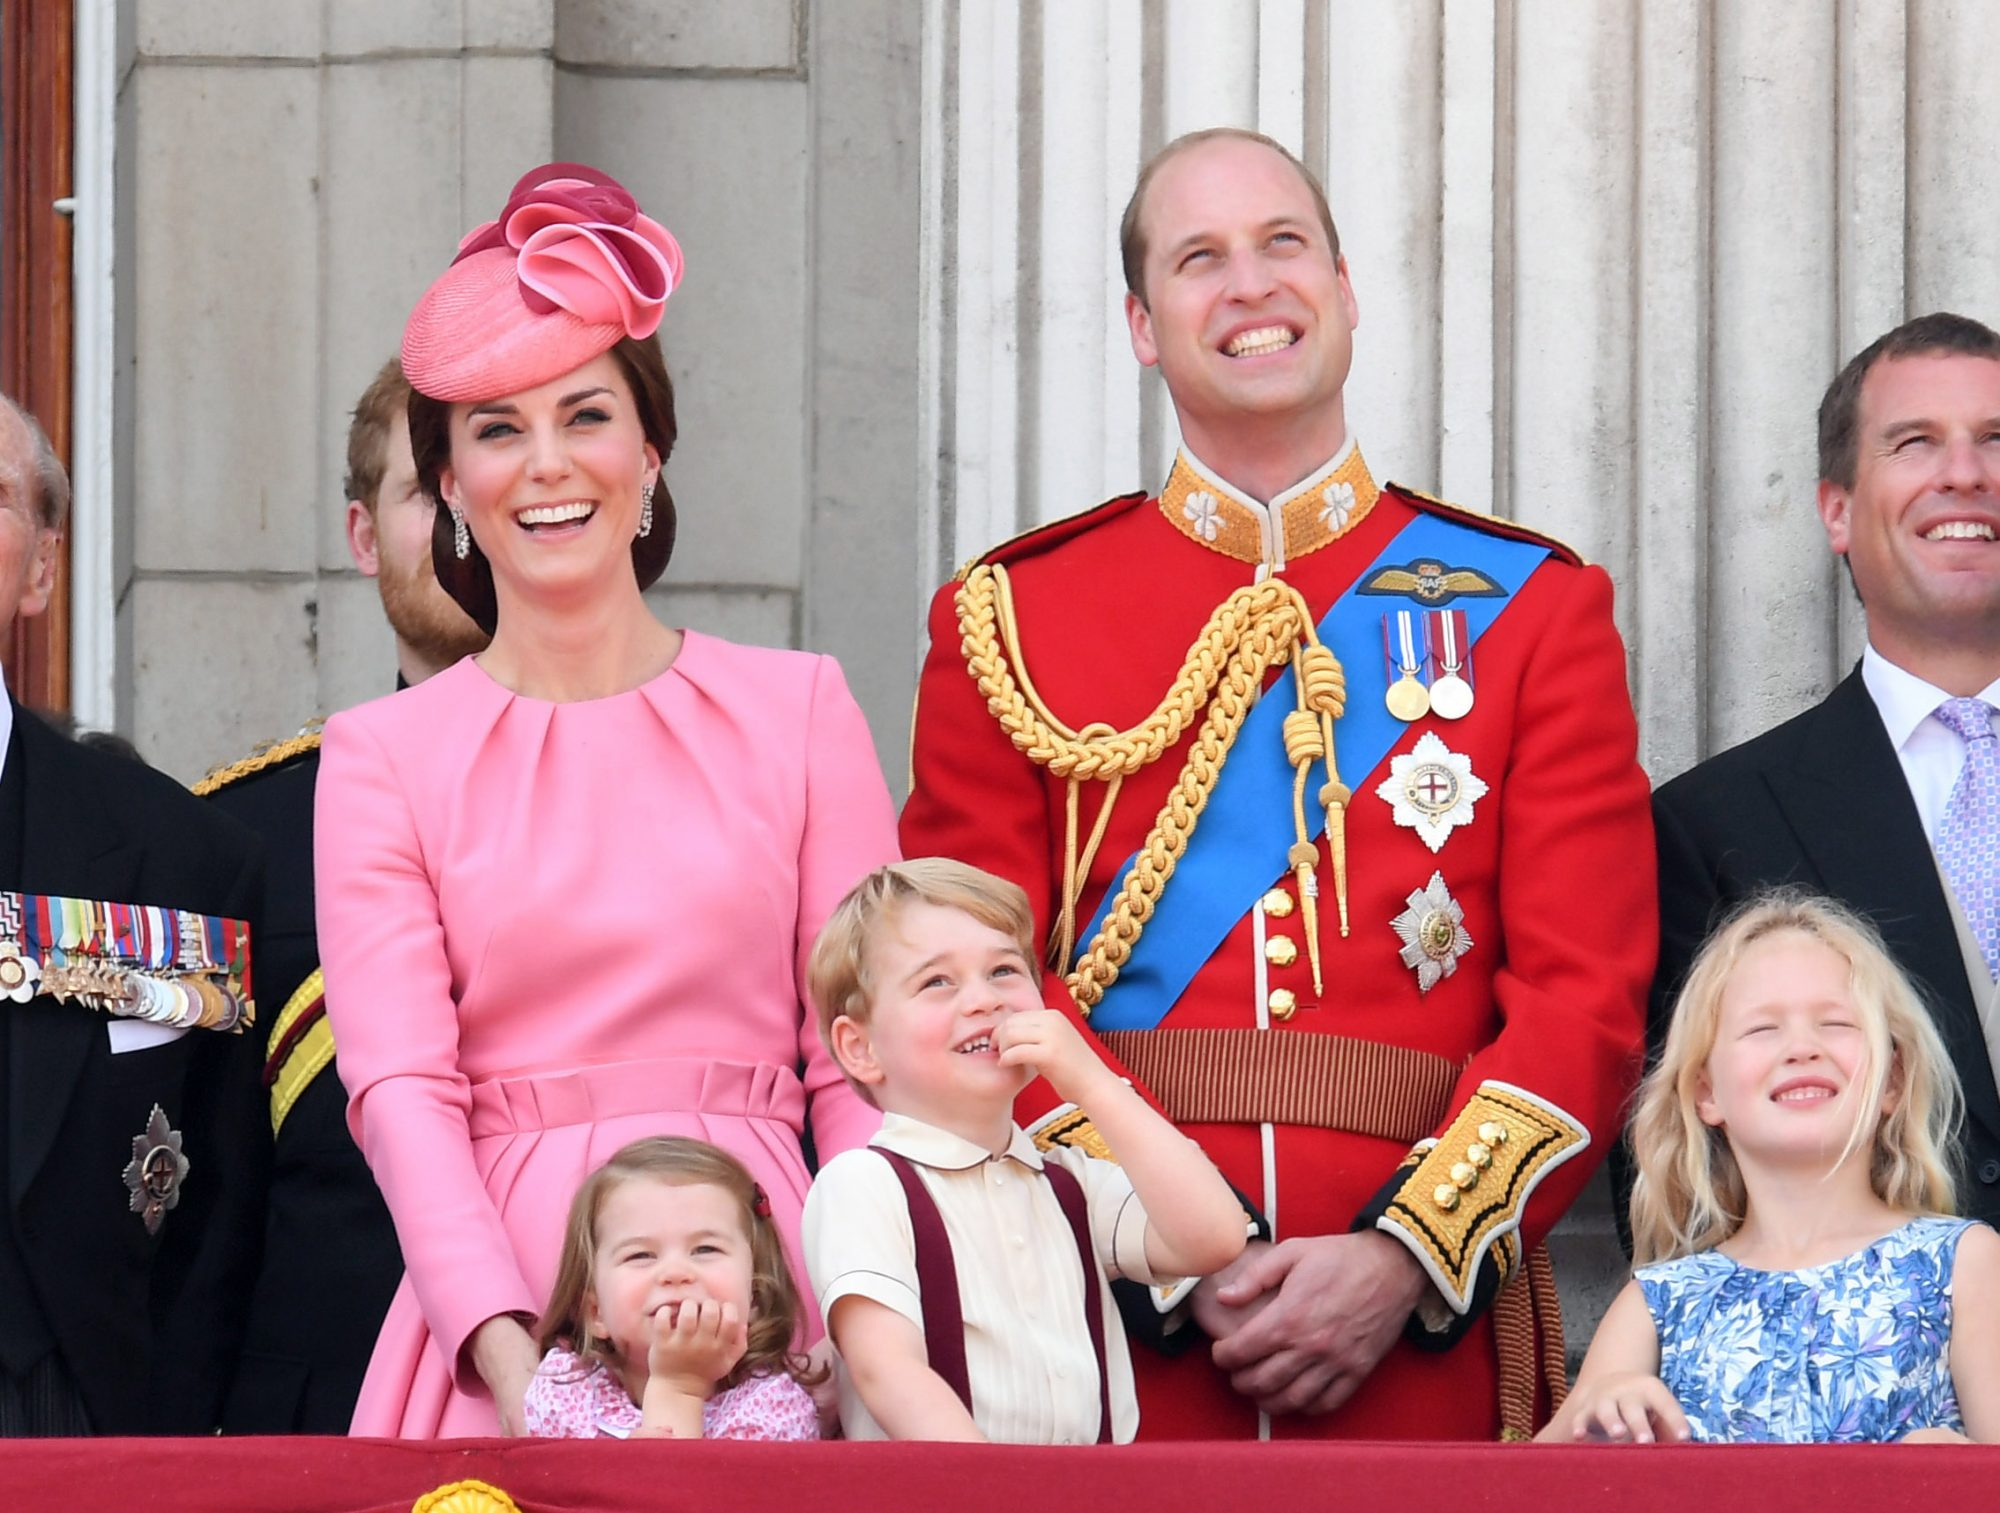 The family laughs at the annual Trooping the Colour